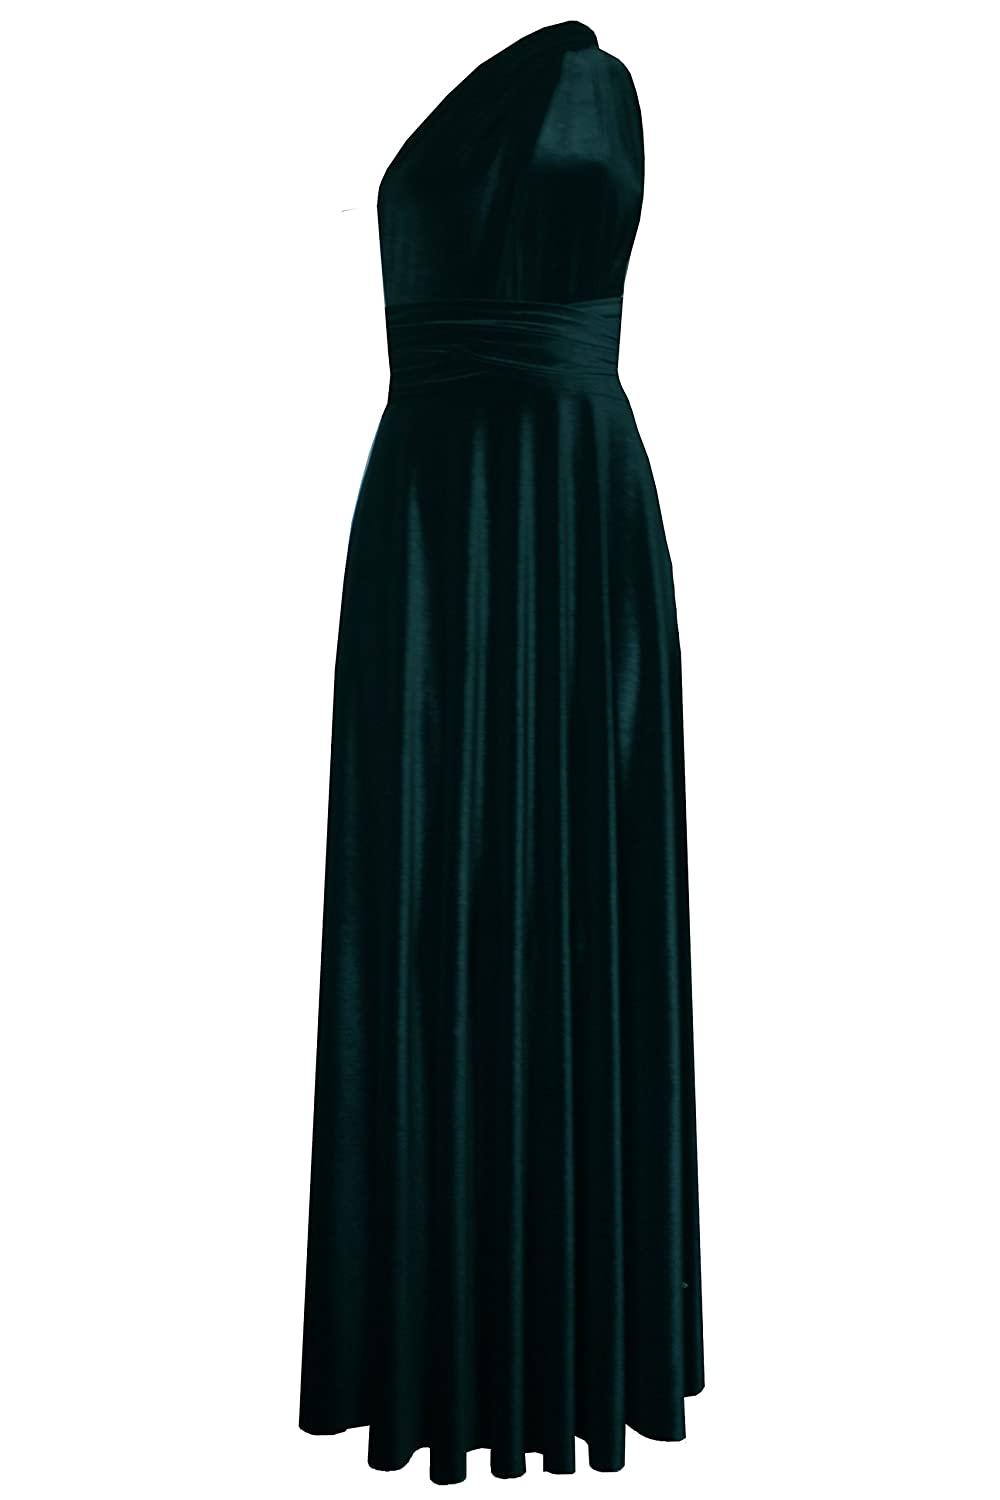 Dark Teal E K Infinity Velvet Dress Congreenible bridesmads Gown Plus Size Multi wrap